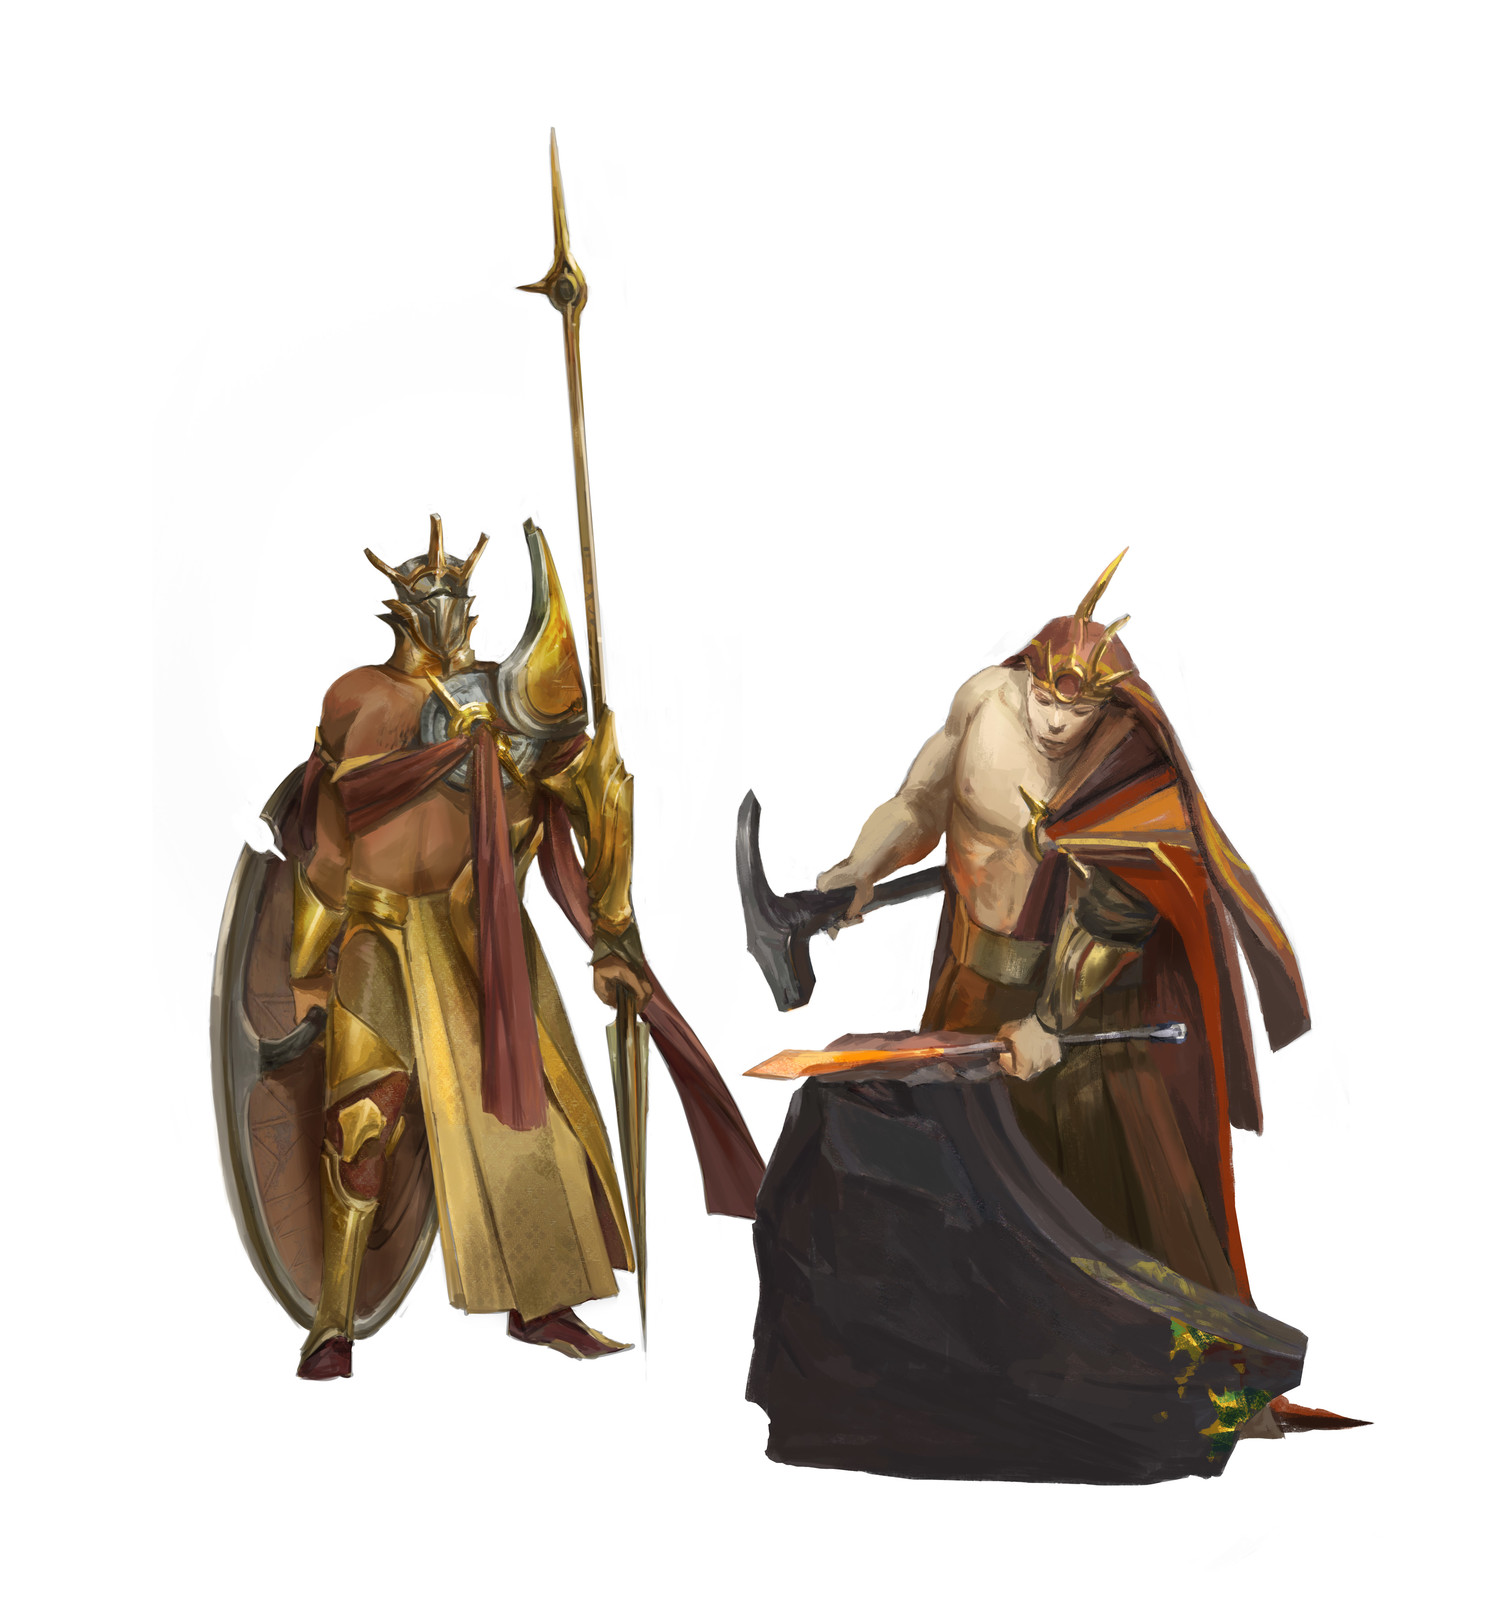 The Solari; the Ra'horak and the Forger